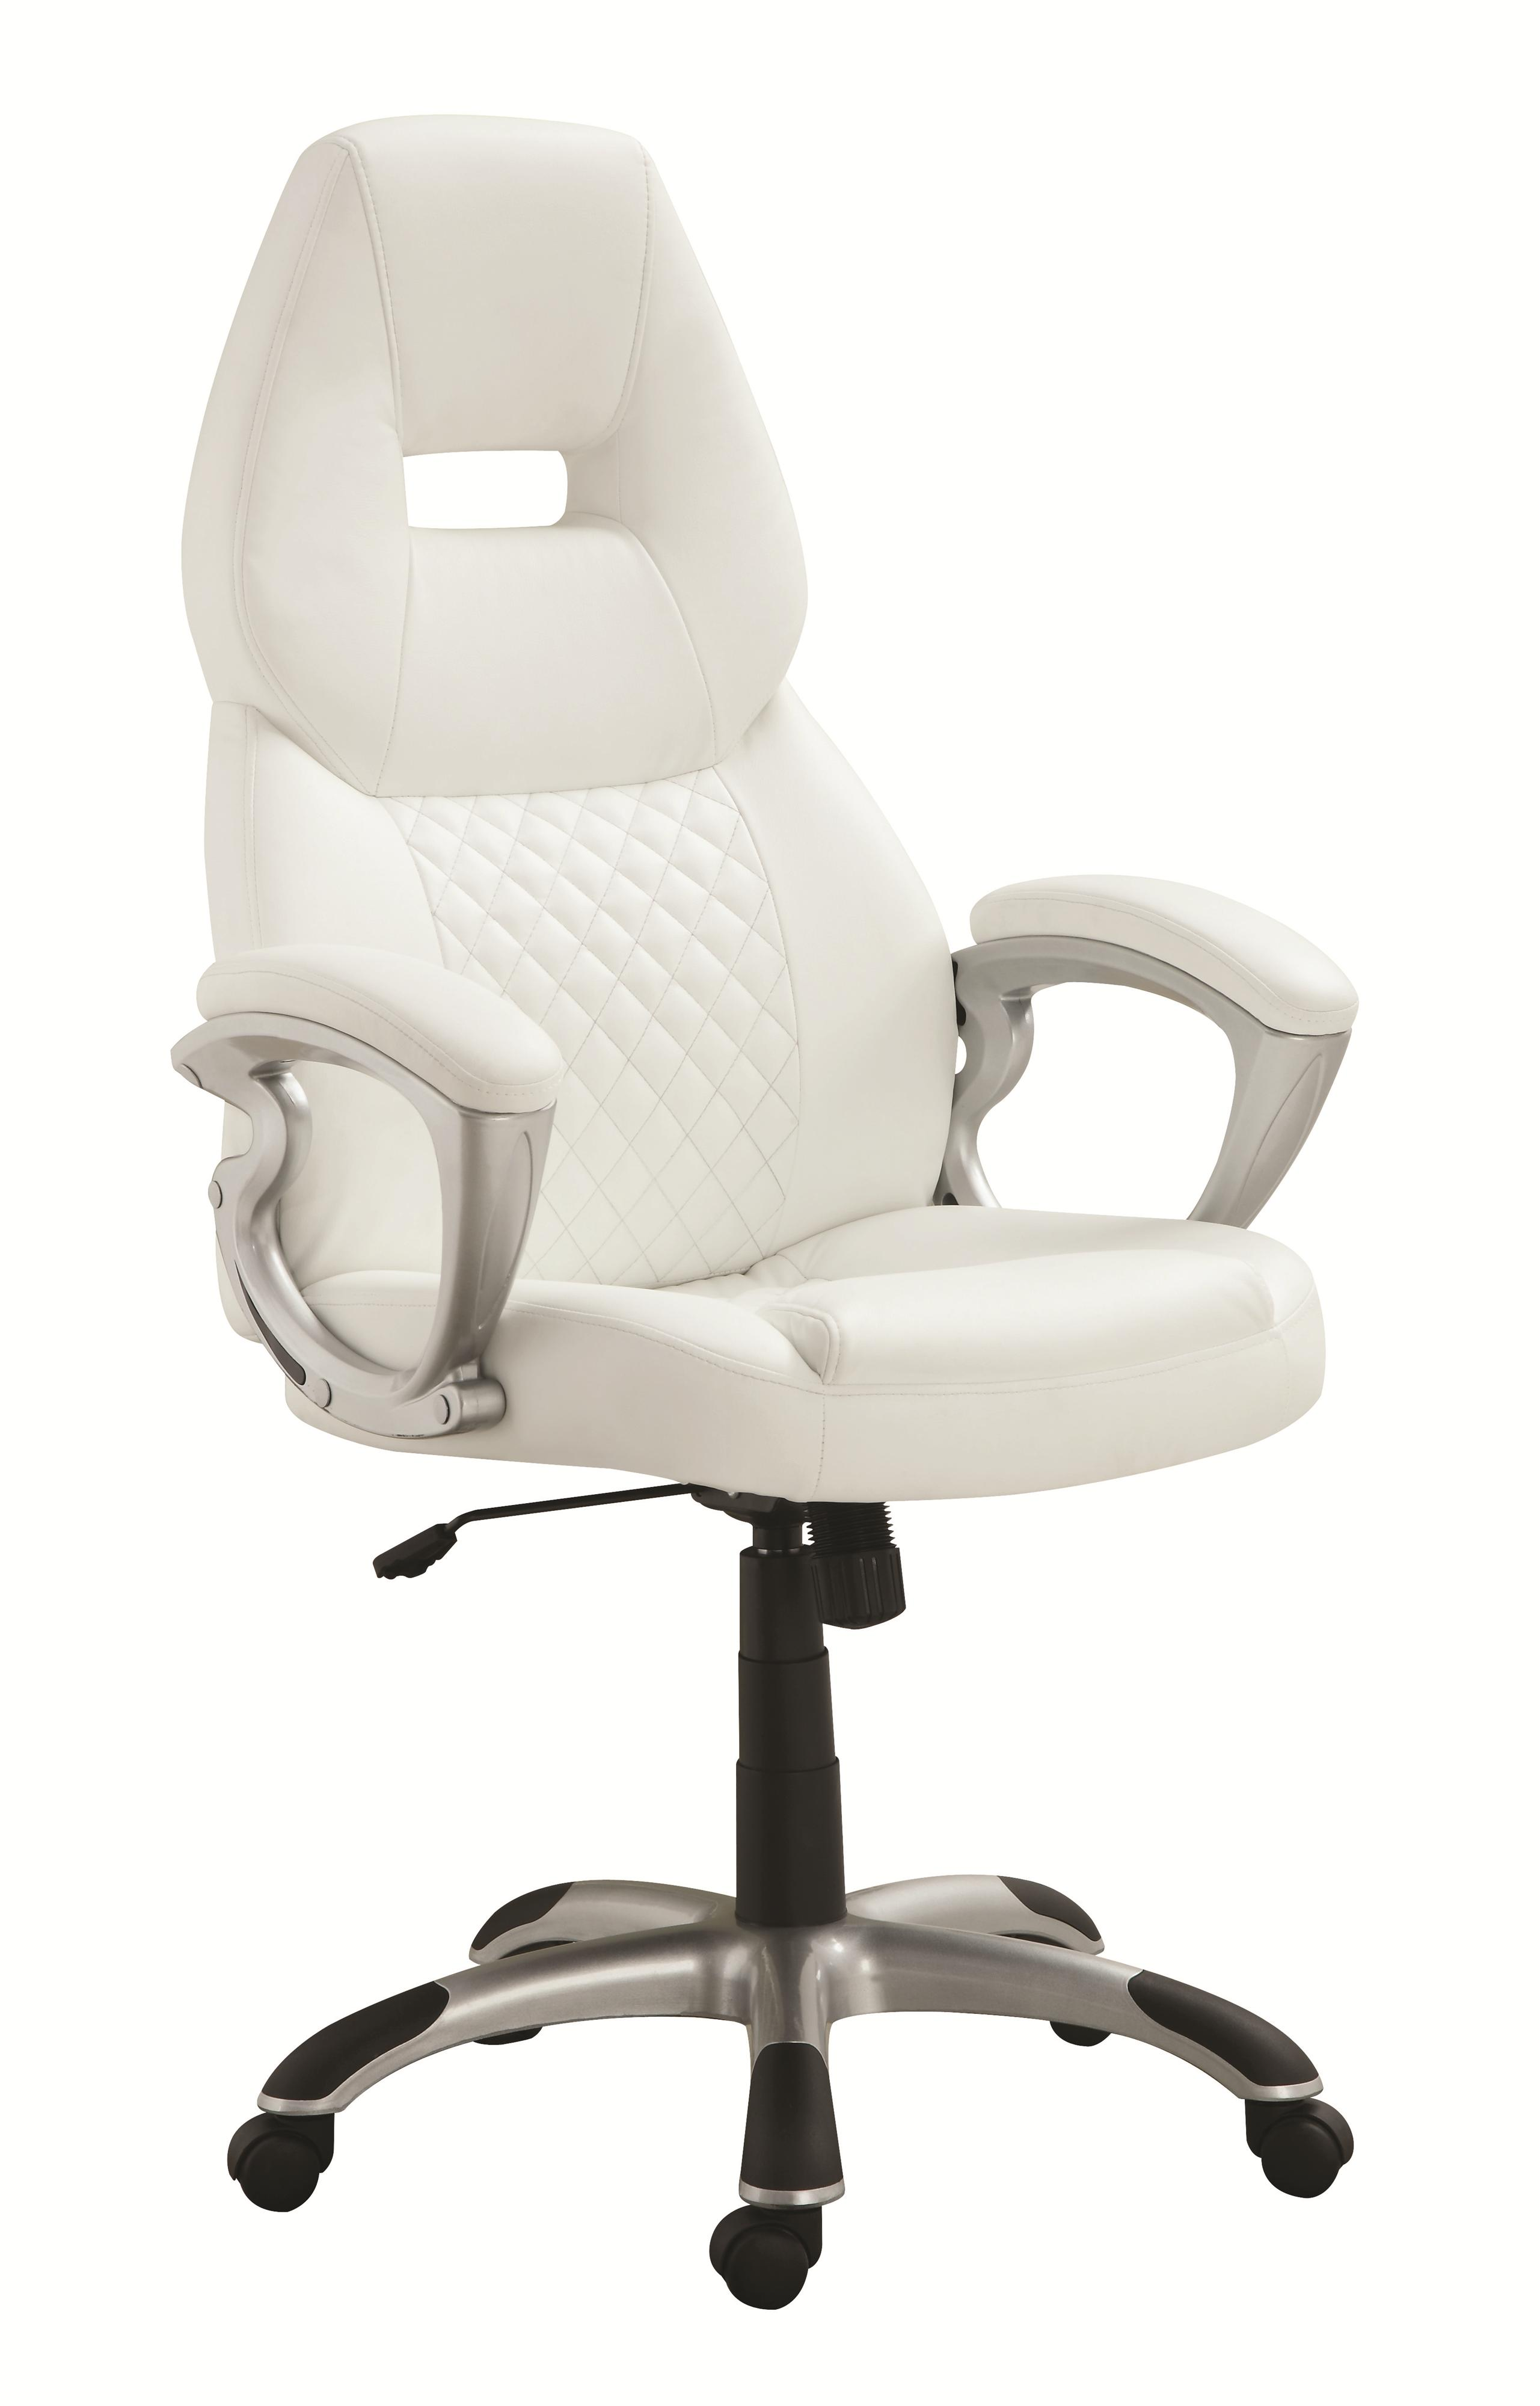 Coaster Office Chairs Office Chair - Item Number: 800150